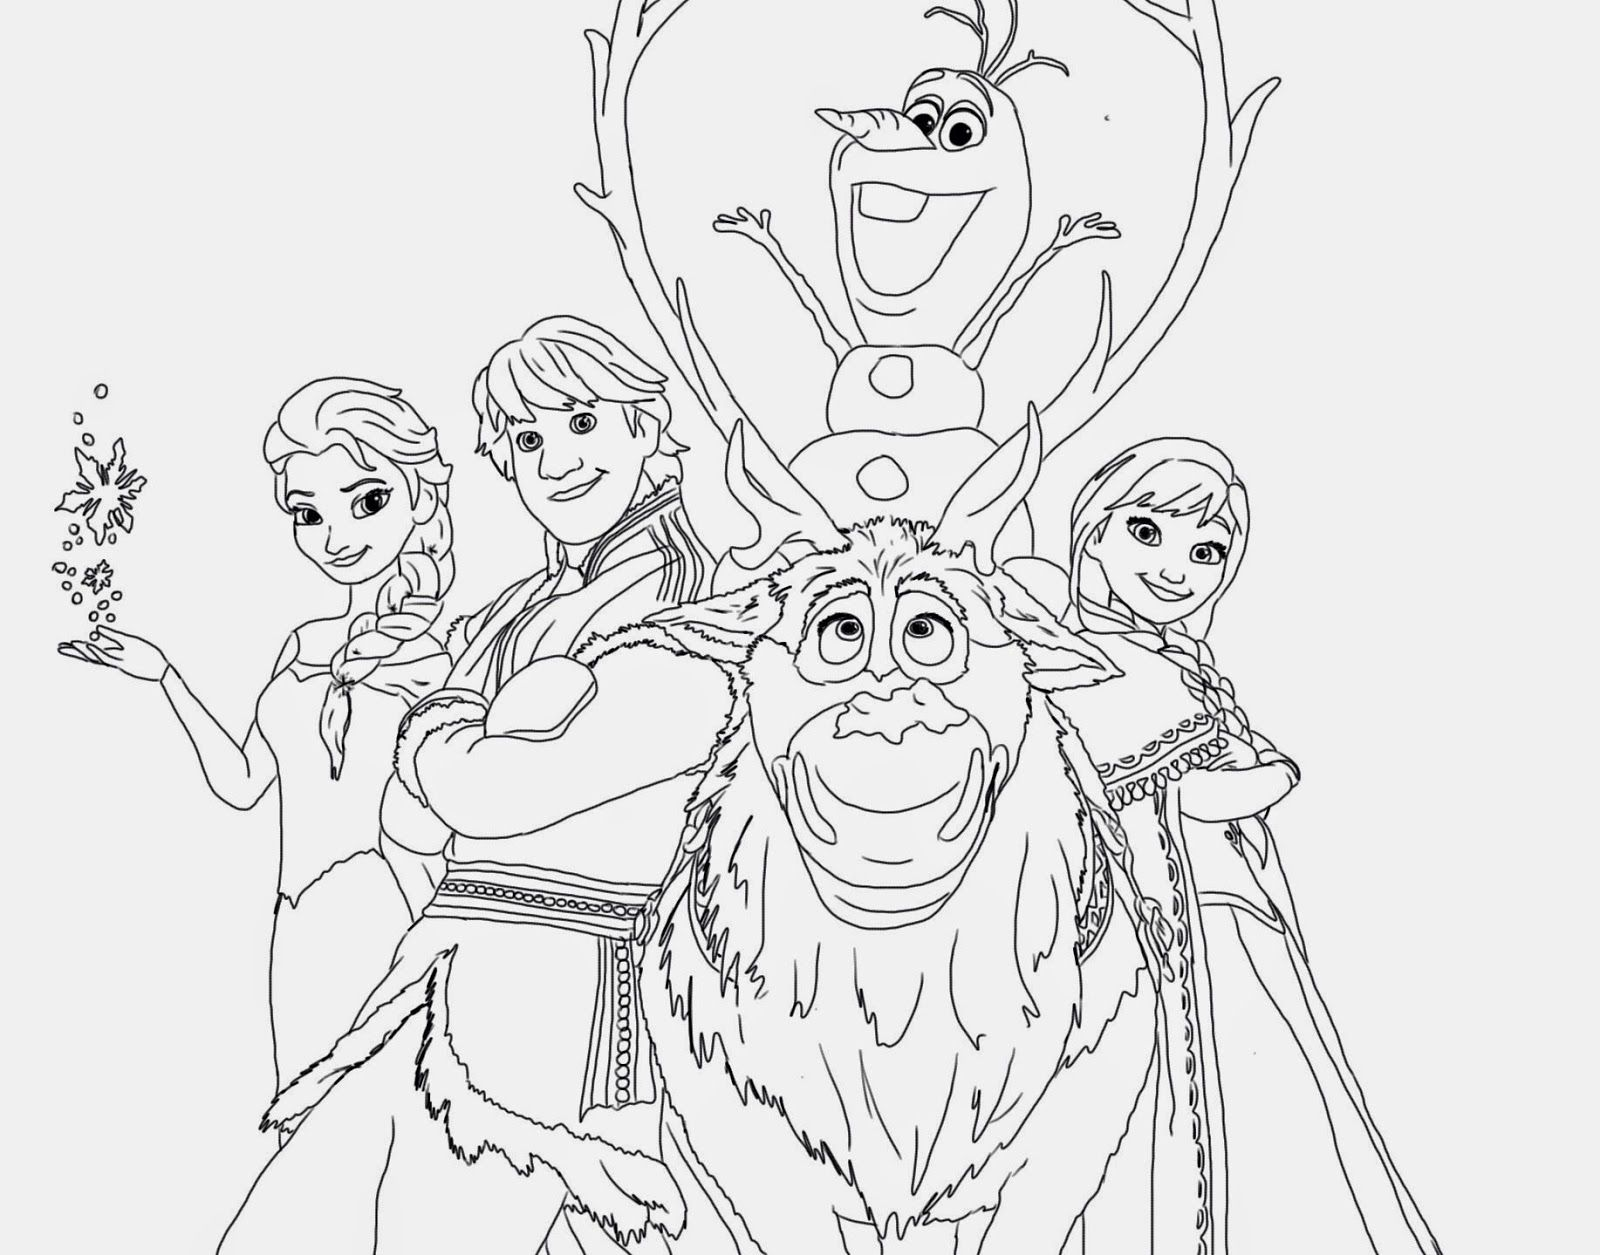 Official frozen illustrations (coloring pages) - Disney Frozen Coloring Pages Printable Instant Knowledge